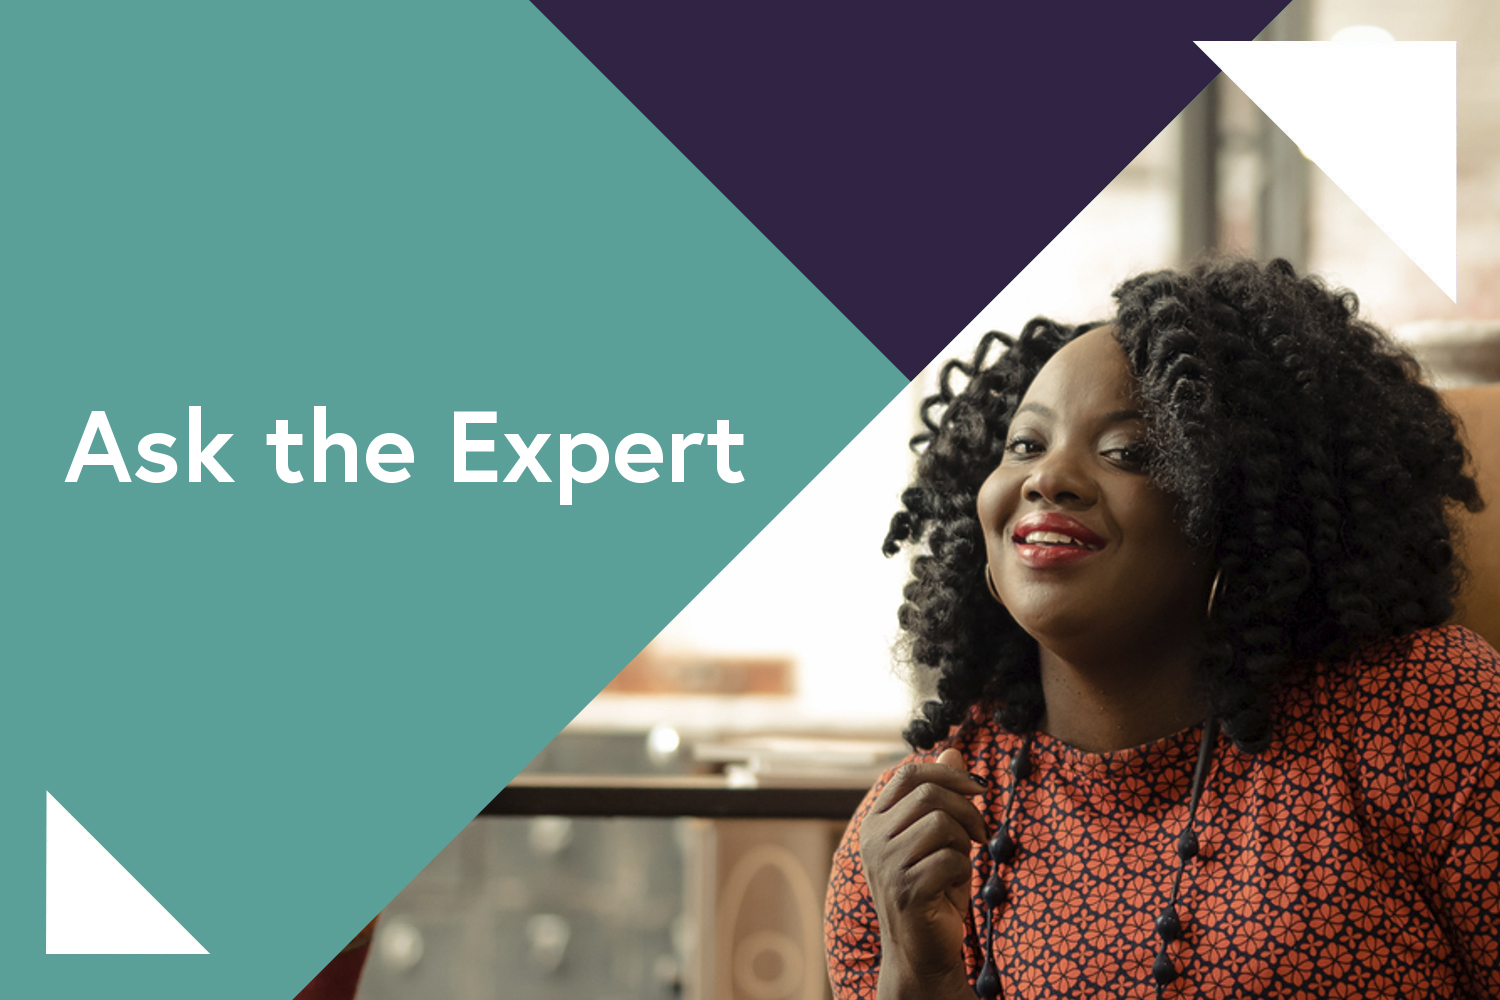 Ask the Expert: Helping leaders lead courageously and inclusively